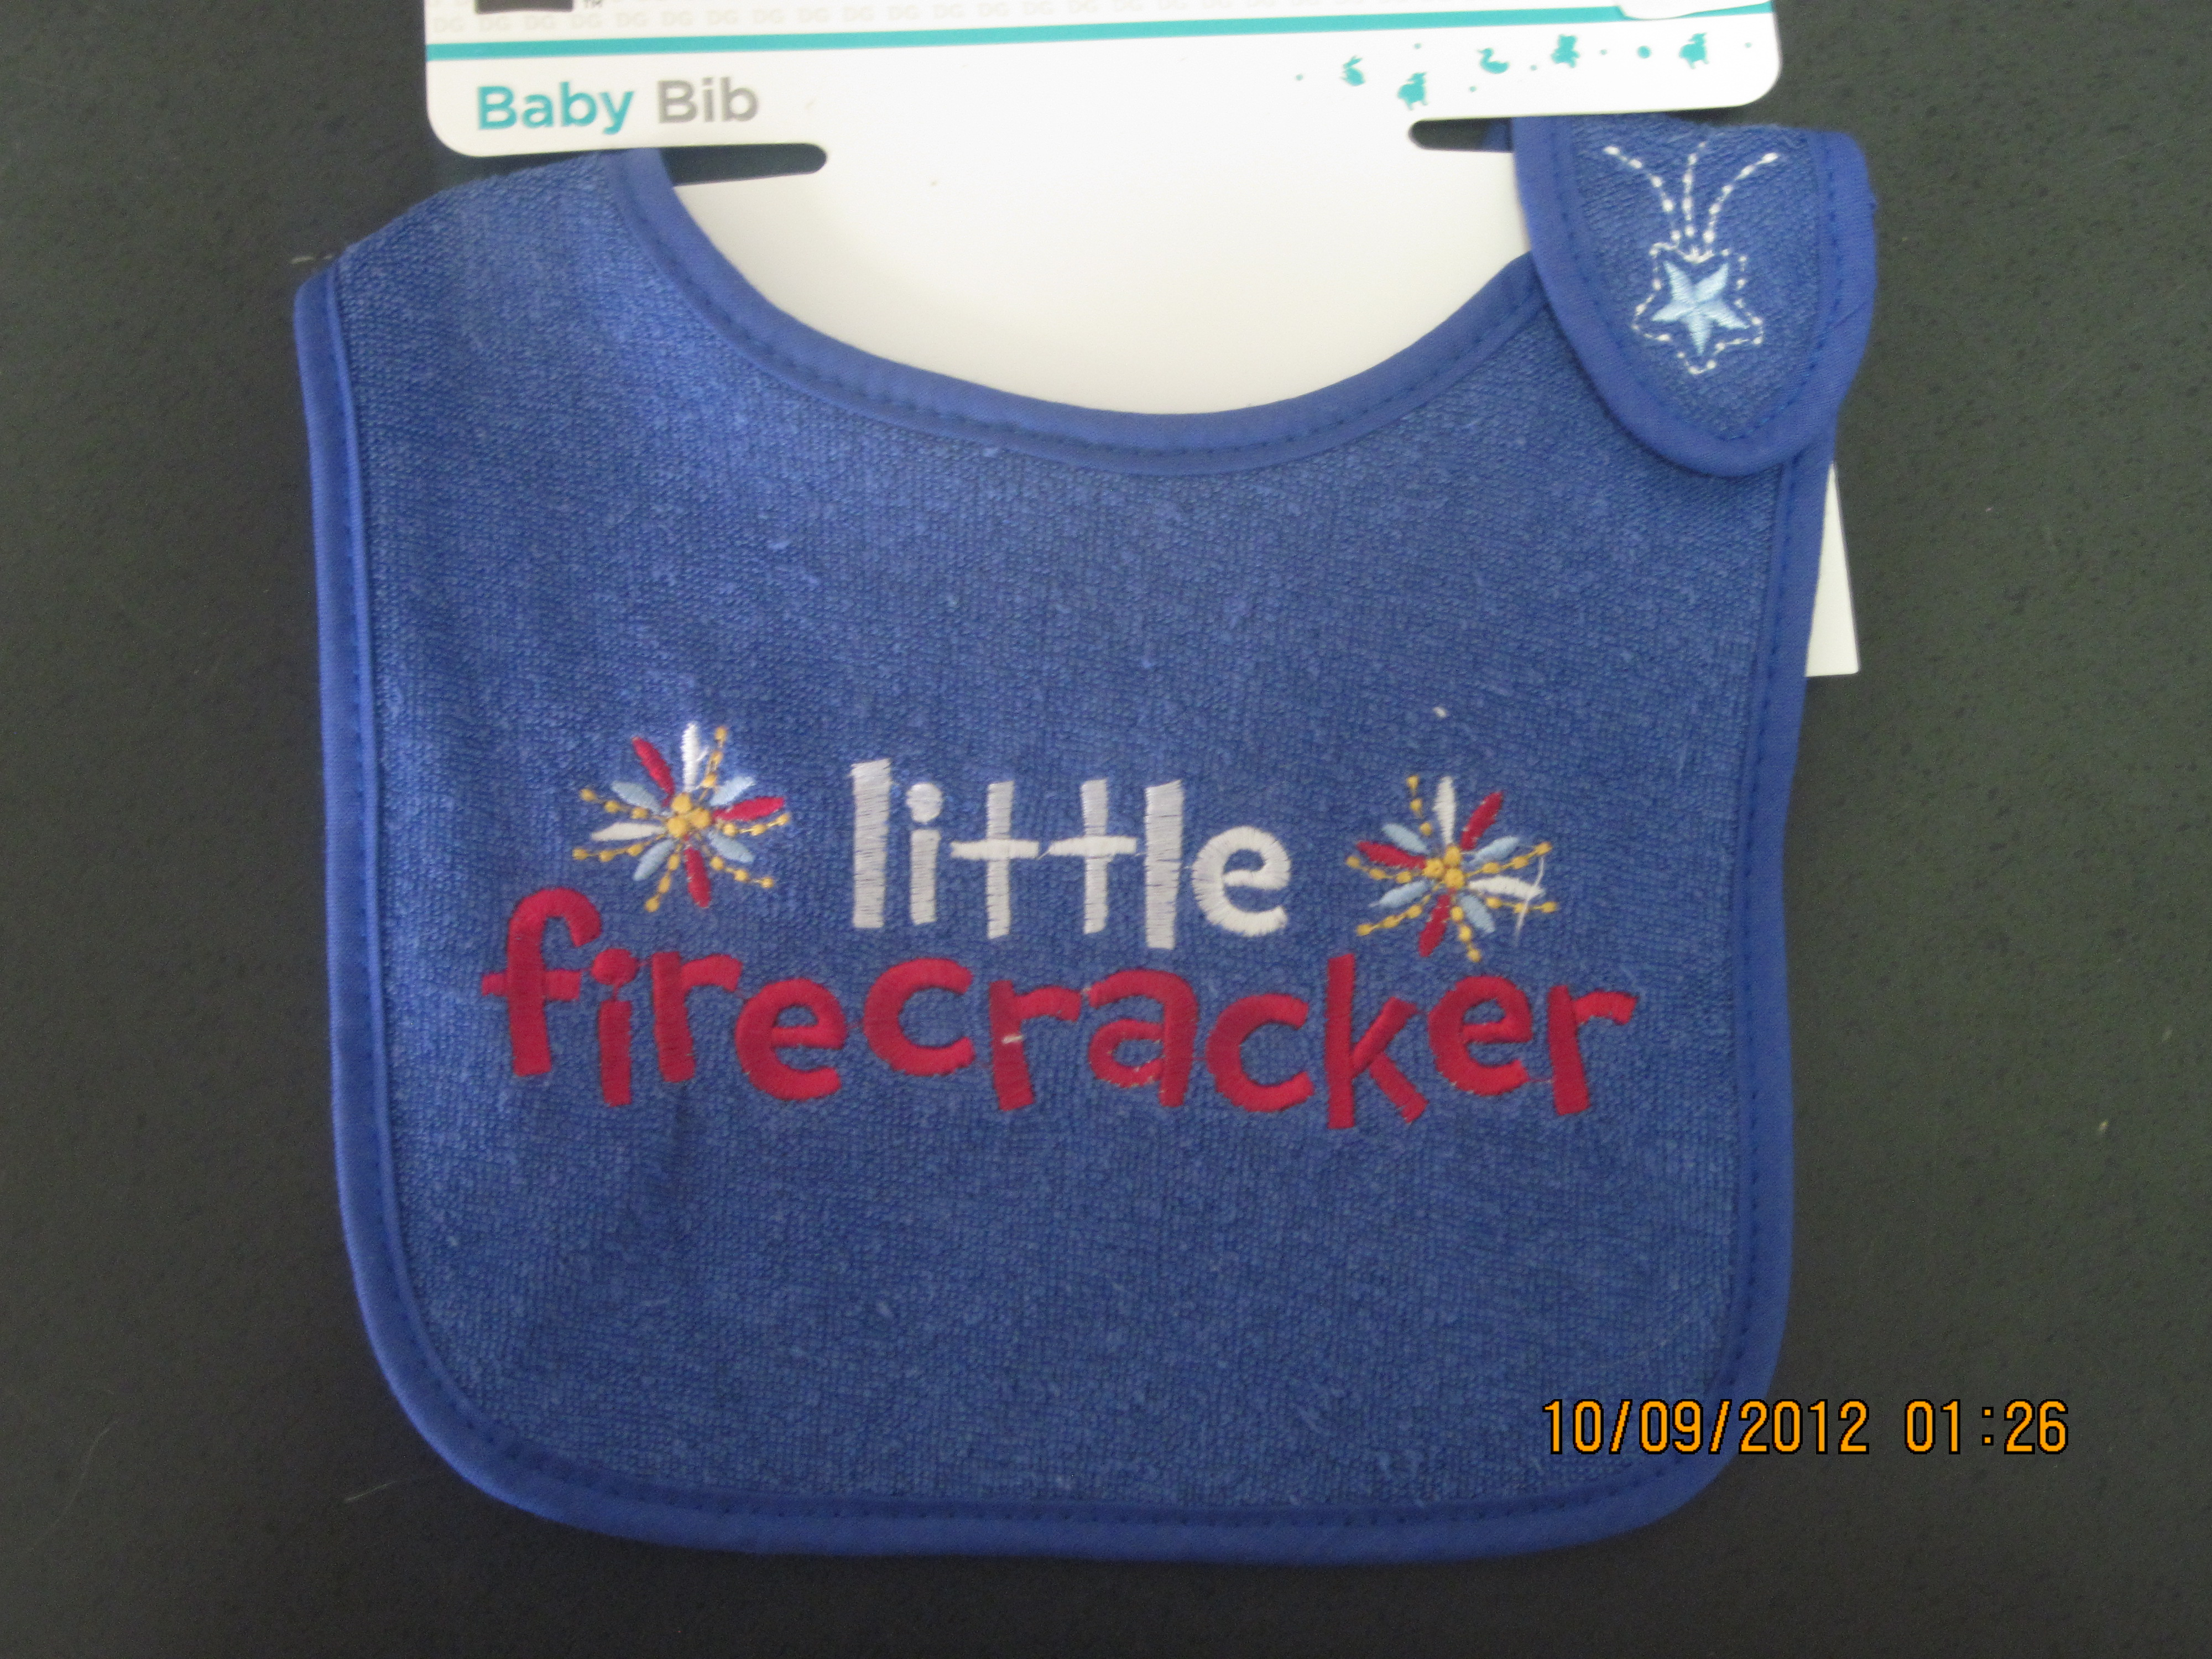 "* Little Firecracker"" Baby Bib(blue with red & white"